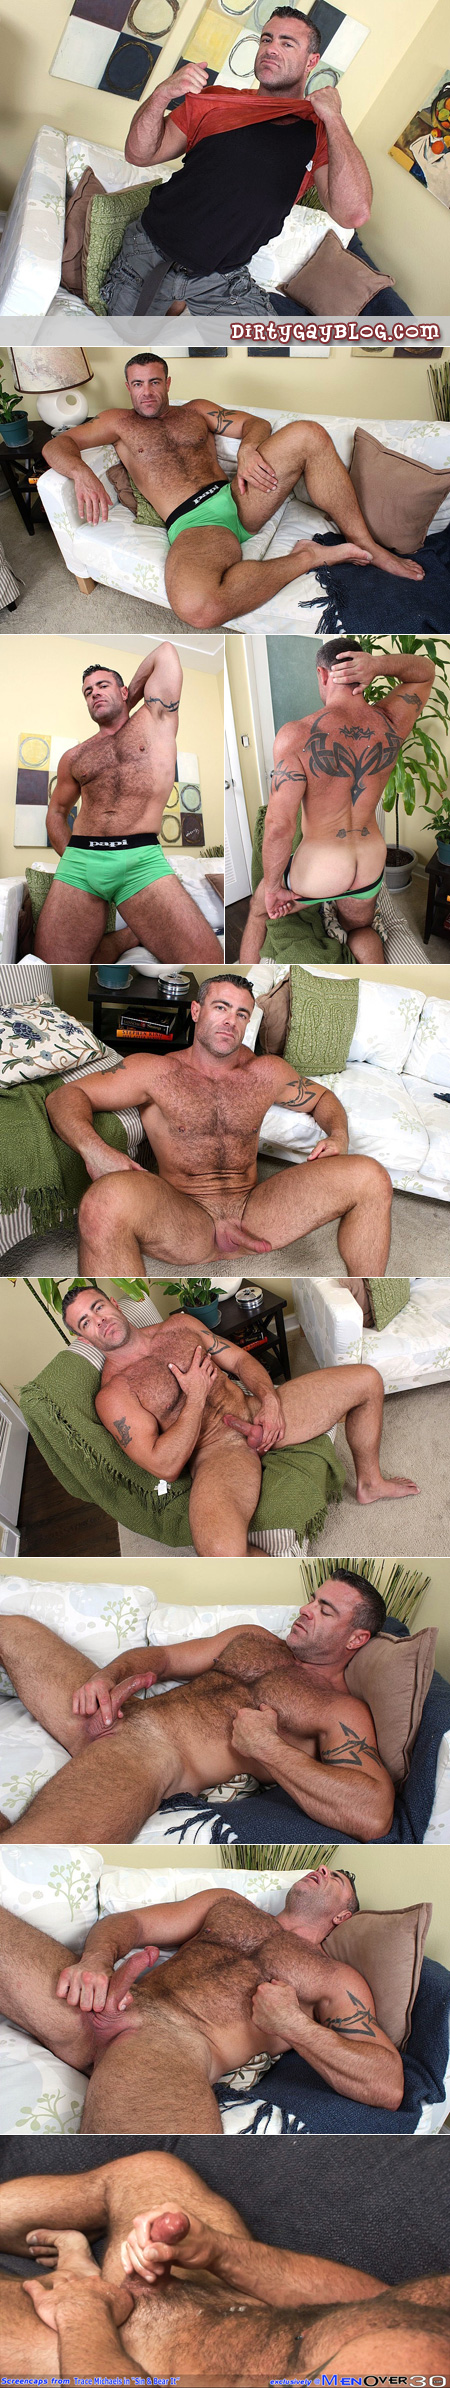 Butch, burly, hairy man jerking off